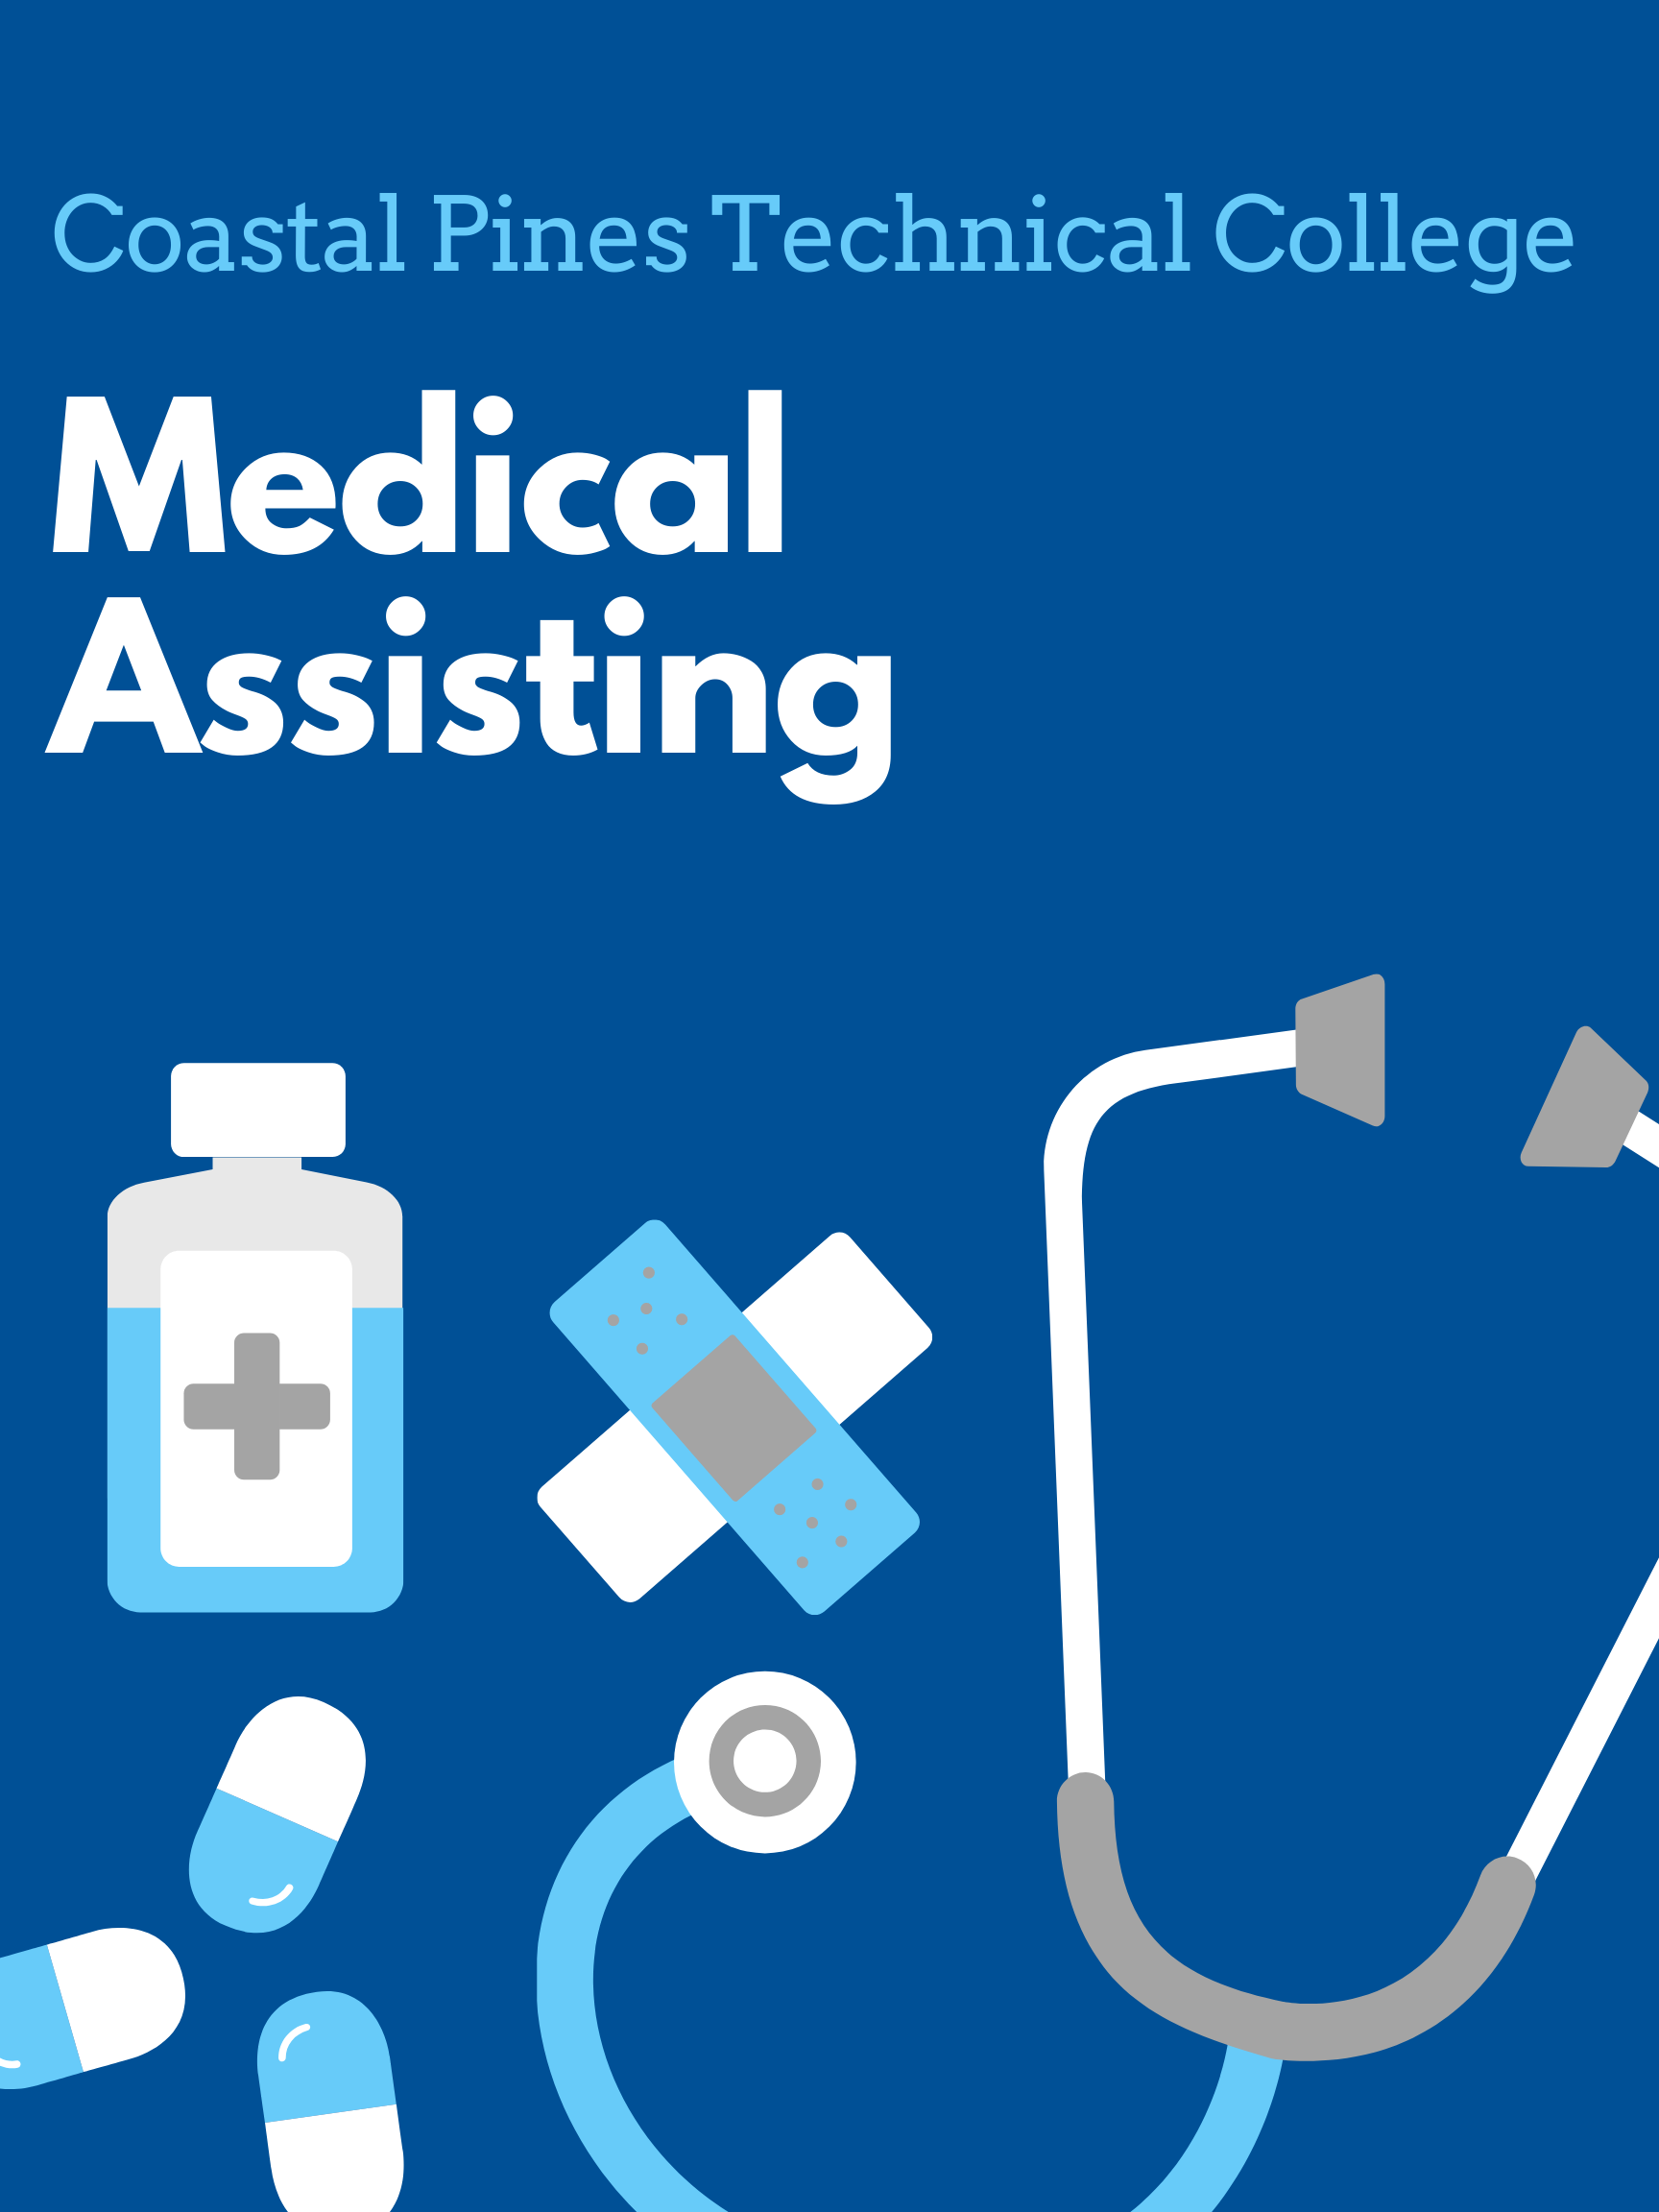 Medical Assisting Poster with clip art of a medicine bottle, bandaids, pills, and a stethoscope.